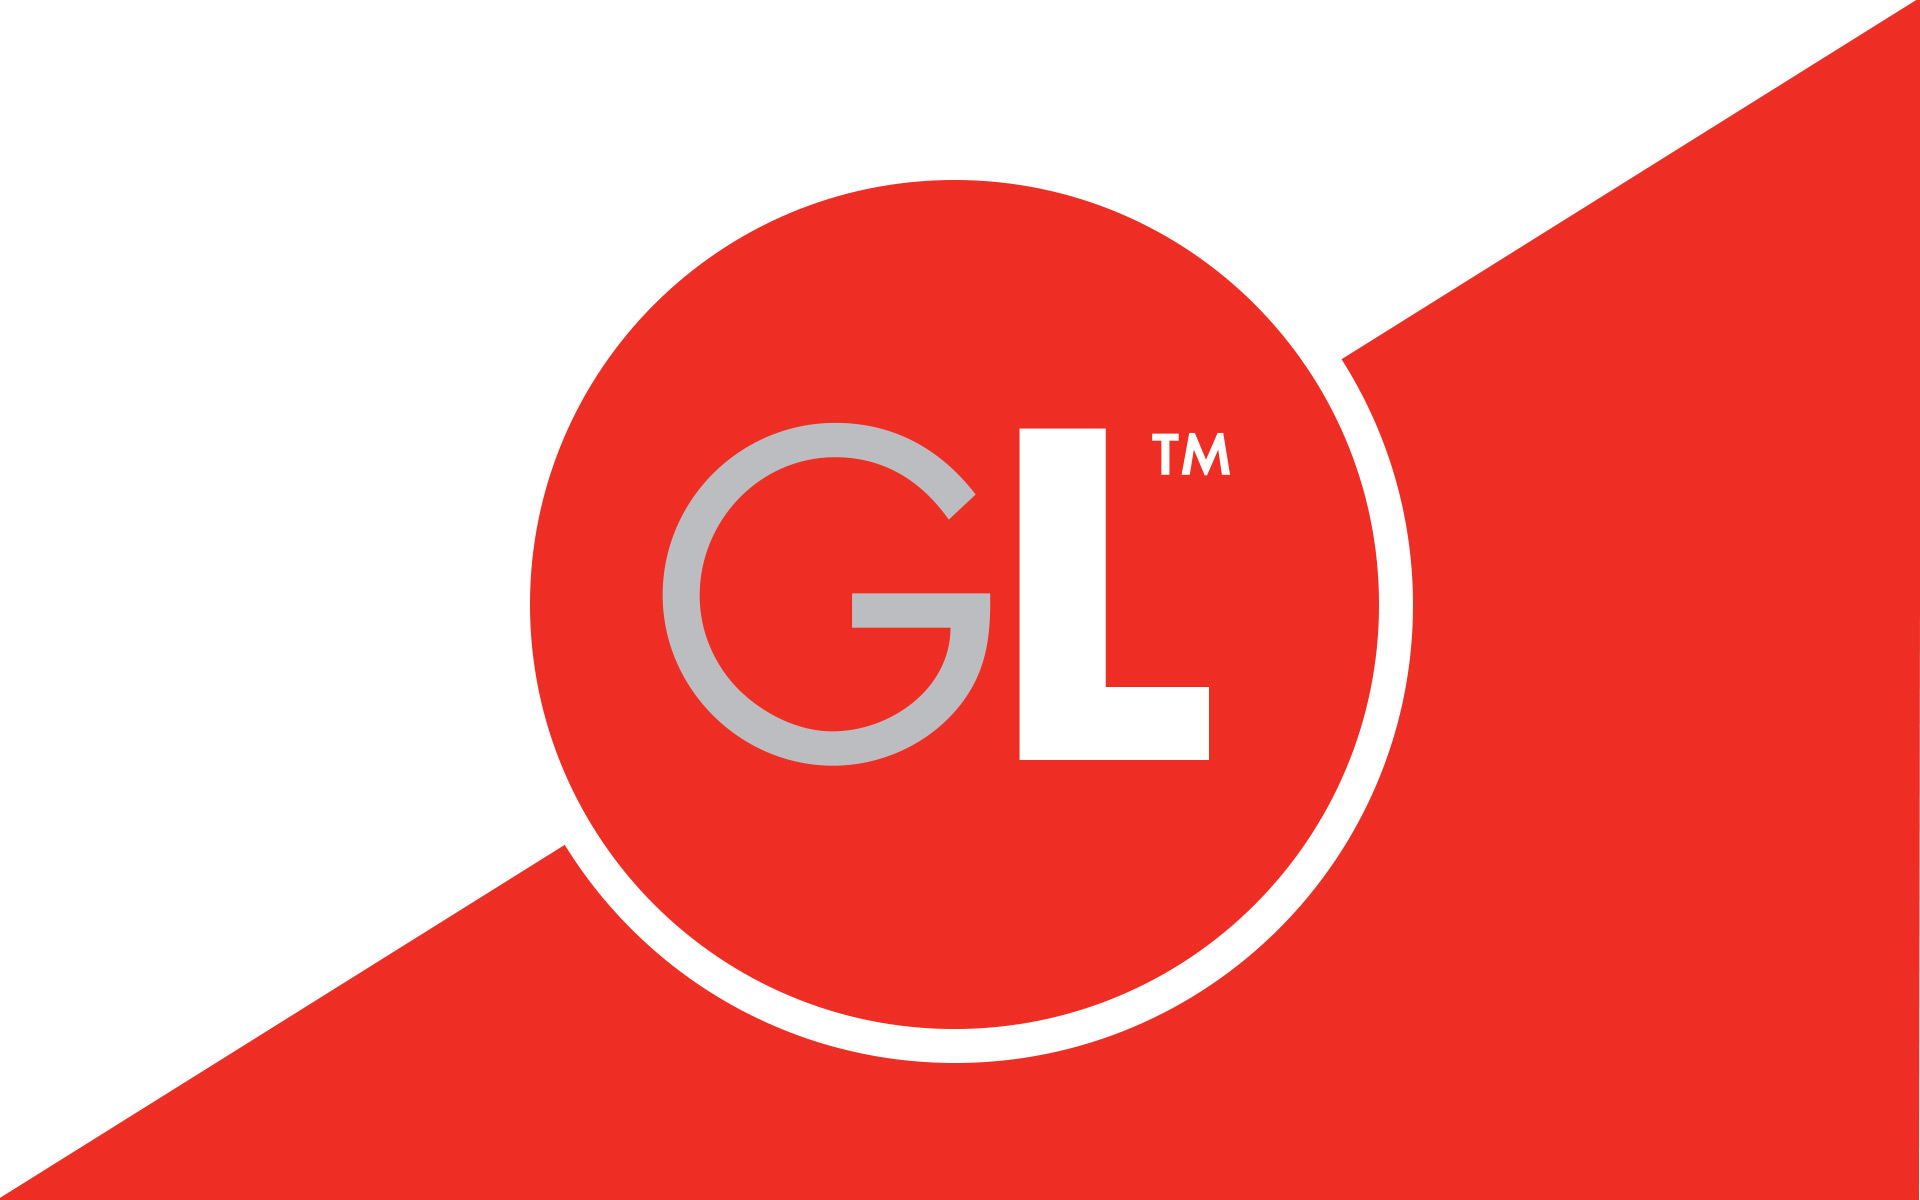 GreatLIFE logo